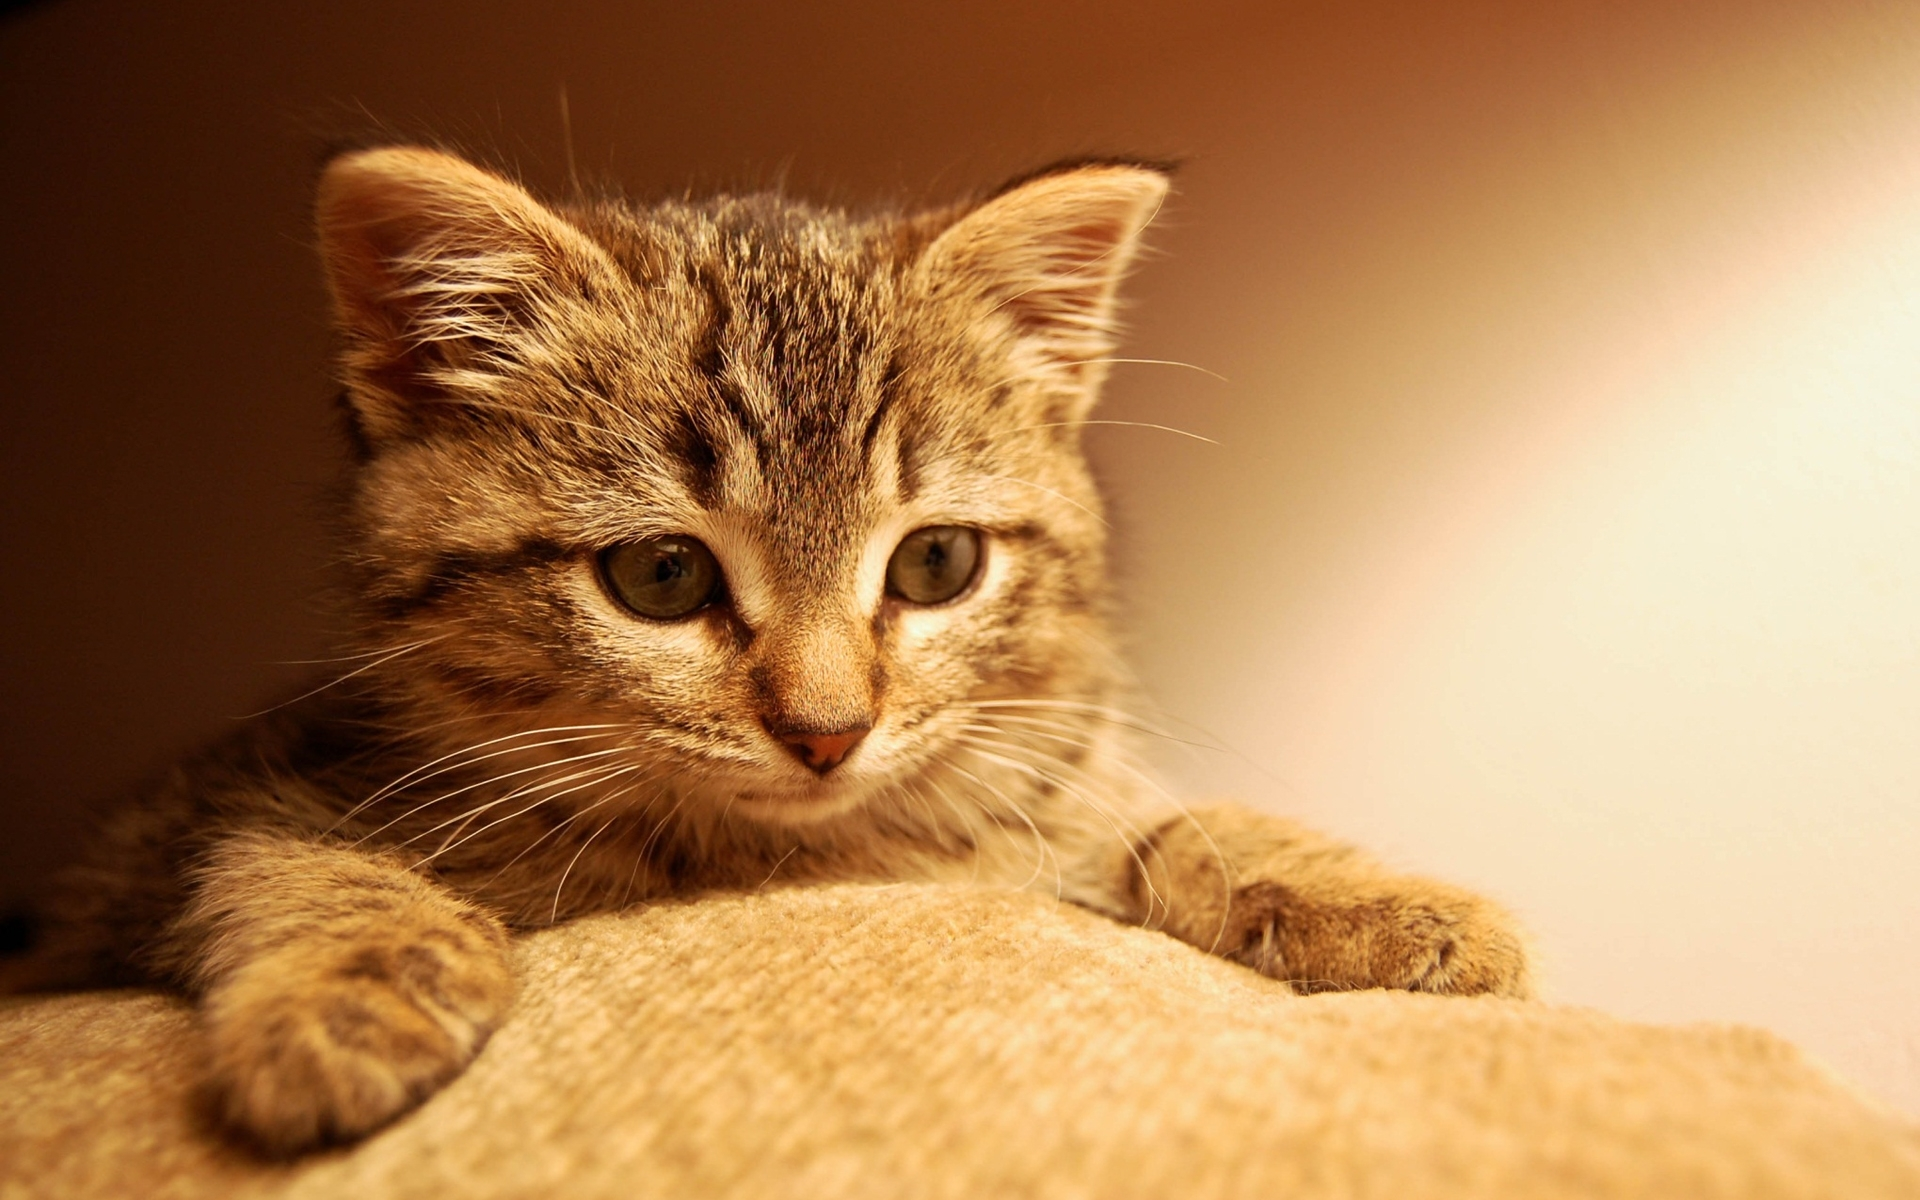 49222 download wallpaper Animals, Cats screensavers and pictures for free